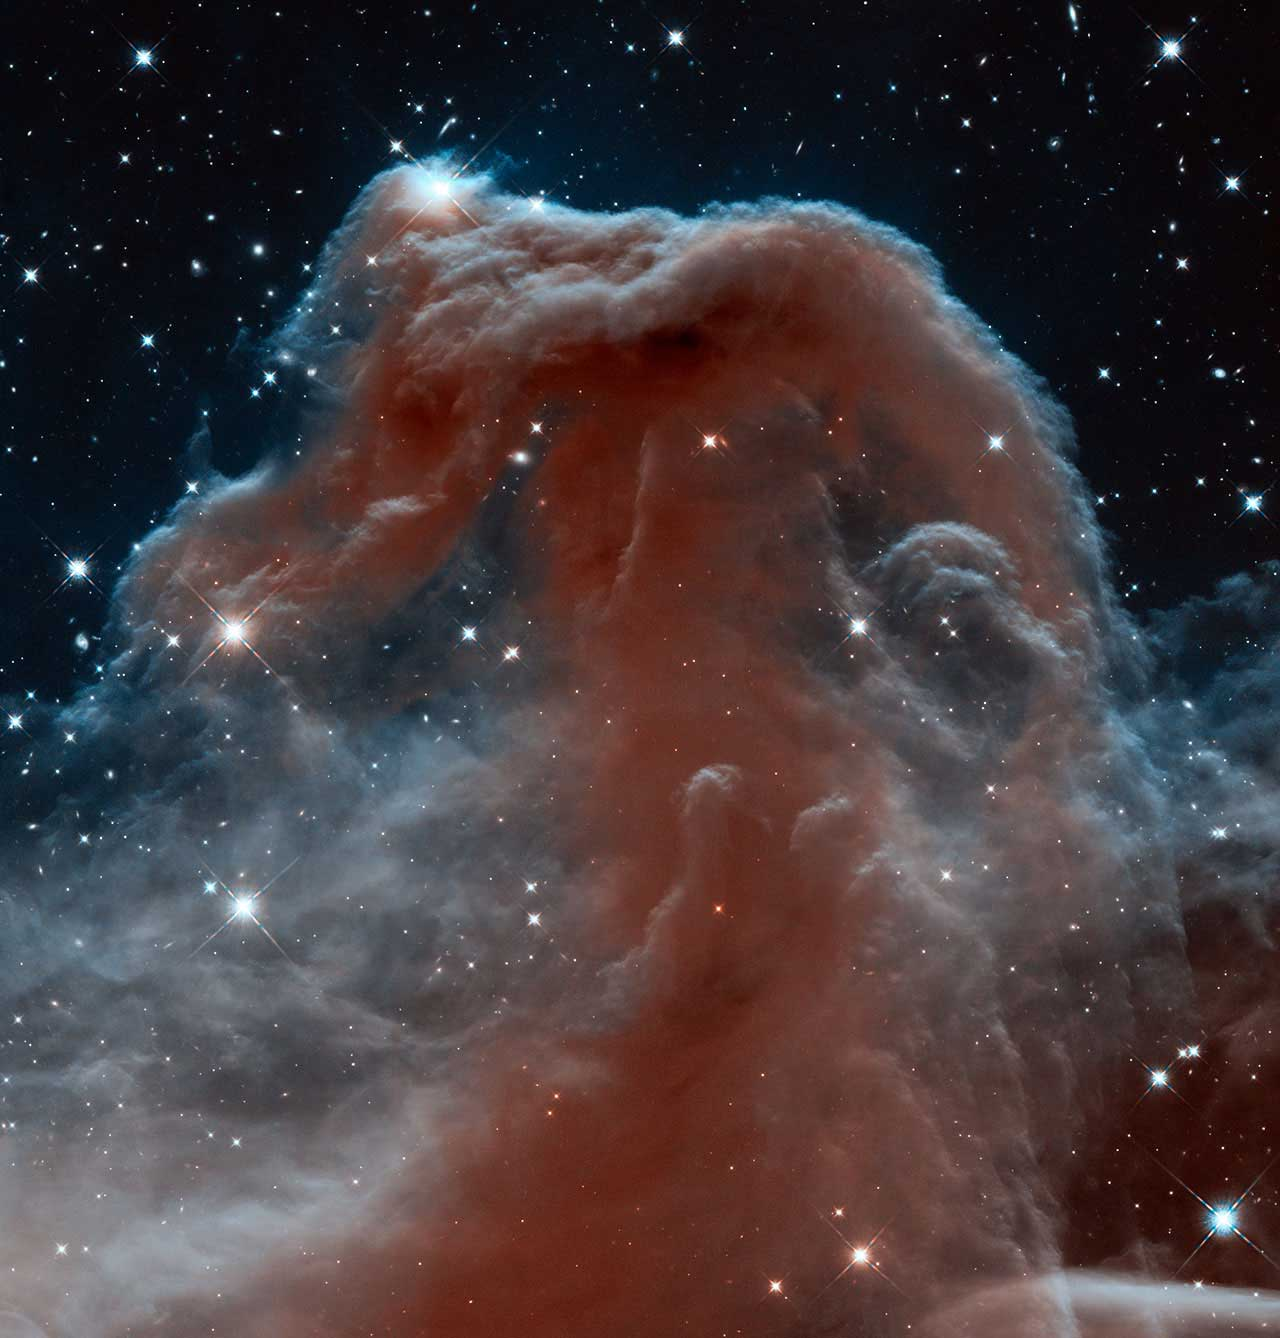 Horsehead Nebula:                                                              Since its launch in April 1990, Hubble has observed and imaged the Horsehead Nebula many times. This new image, released in 2013, shows part of the sky in the constellation of Orion (The Hunter). The nebula, otherwise known as Barnard 33 is shown in infrared light, which has longer wavelengths than visible light and can pierce through the dusty material that usually obscures the nebula's inner regions.                                                               Image released on April 19, 2013